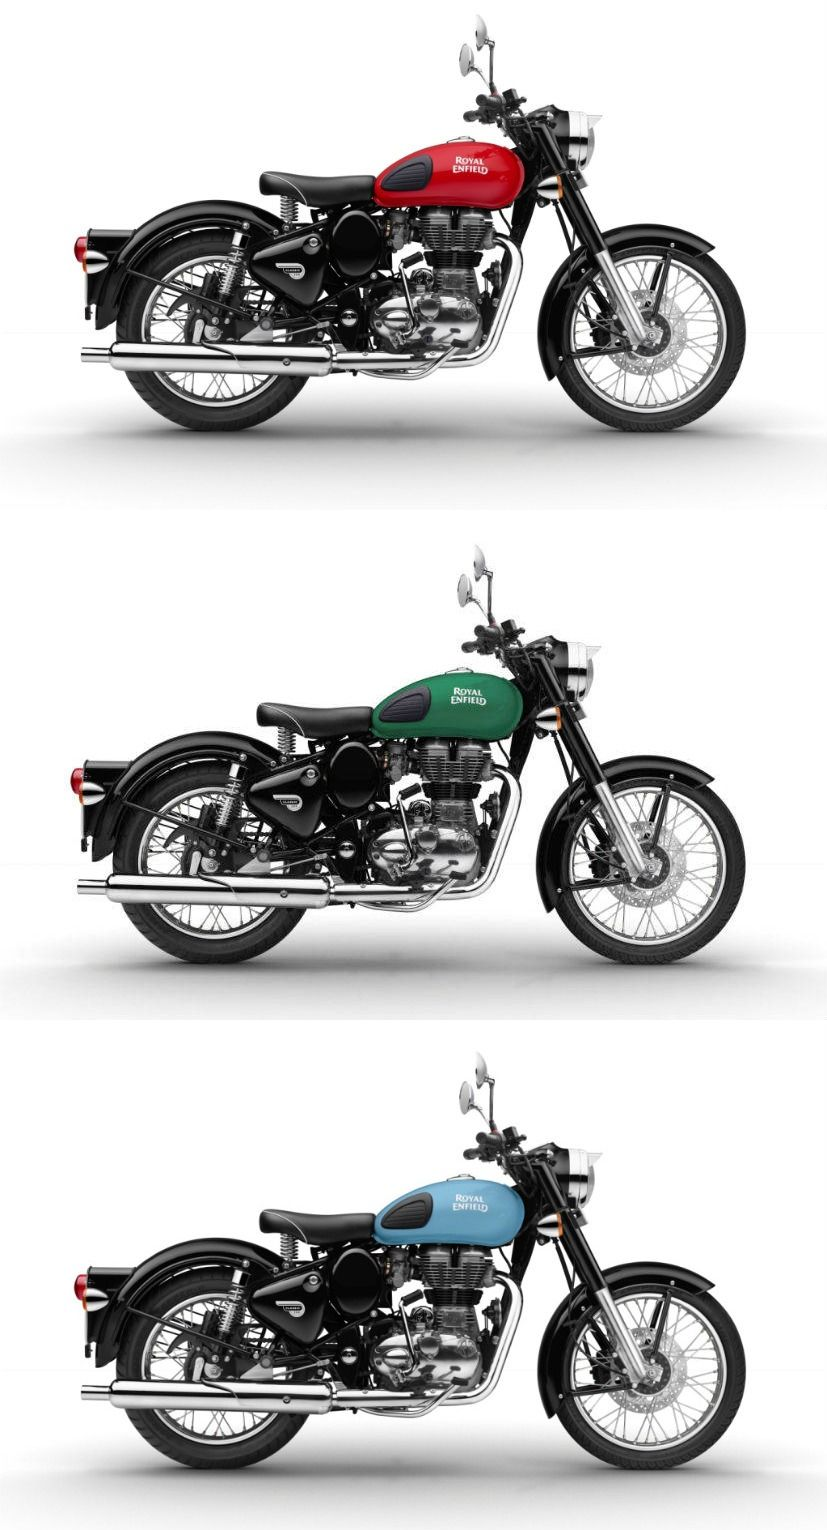 Royal Enfield Launches Redditch Classic 350 Variants Bookings To